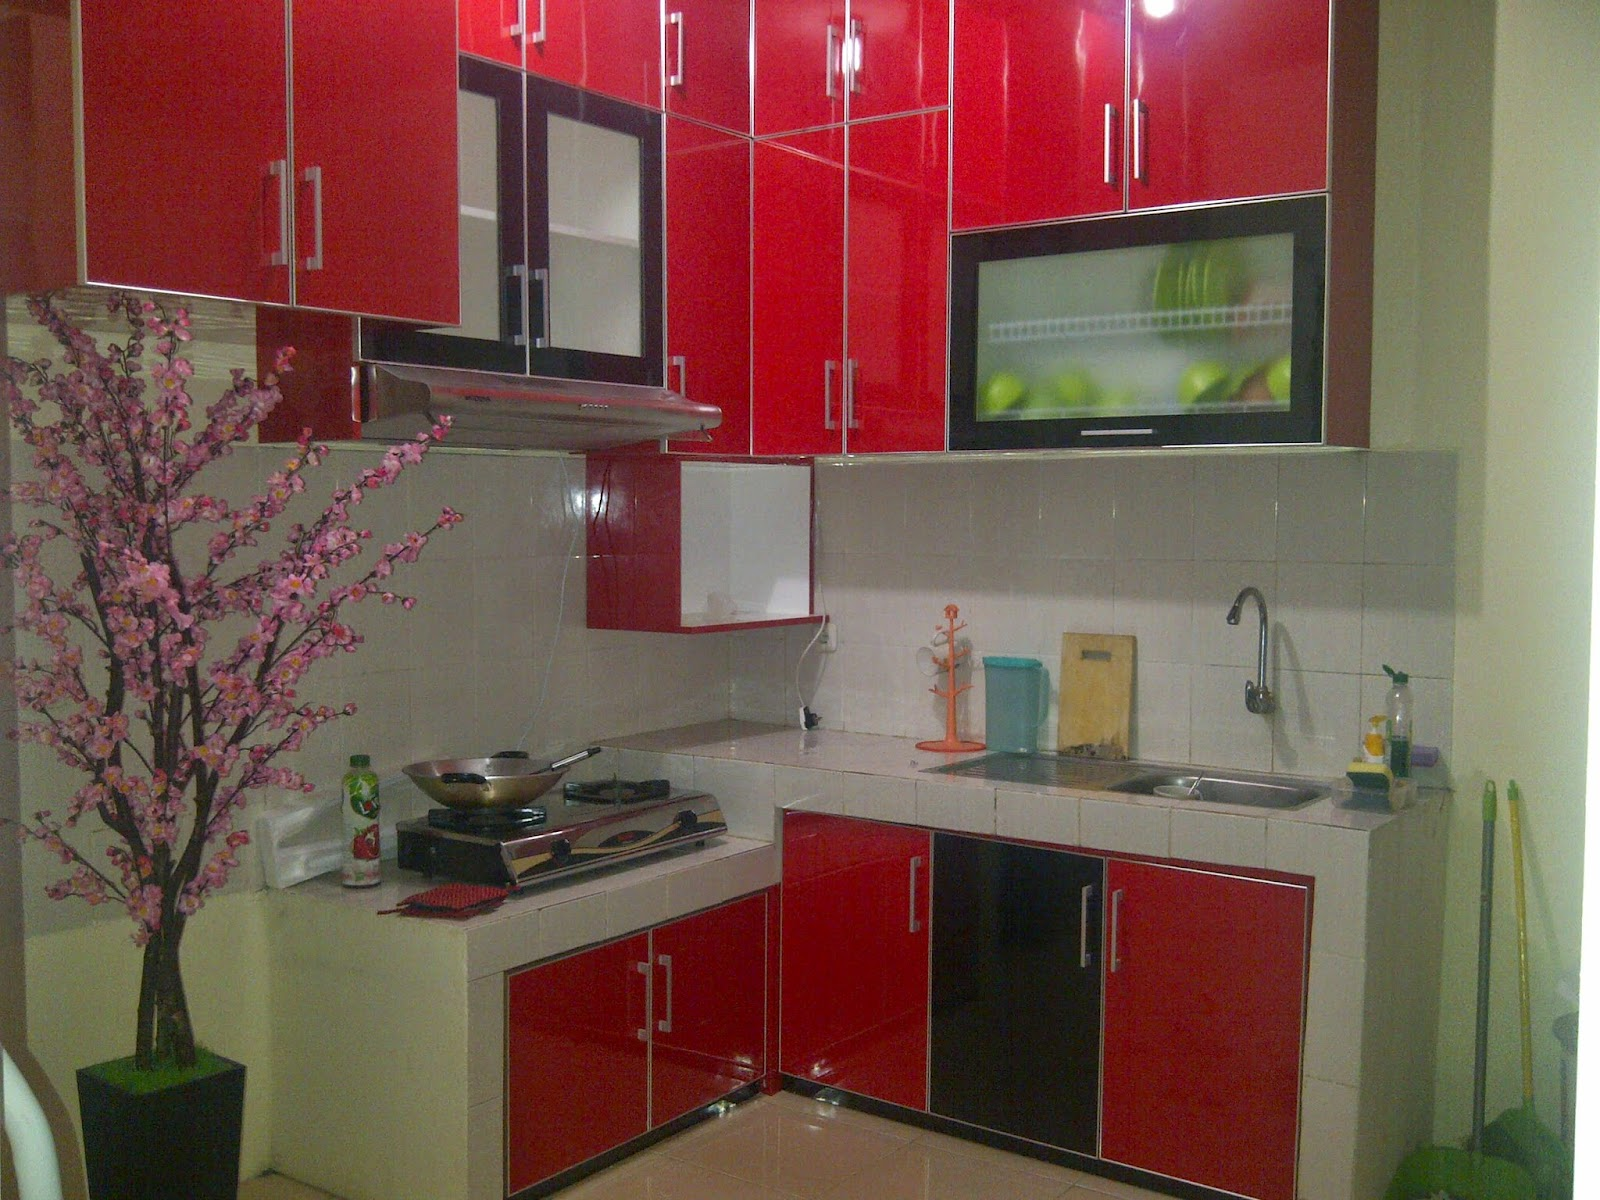 Model Dapur Sederhana Jasa Kitchen Set Murah